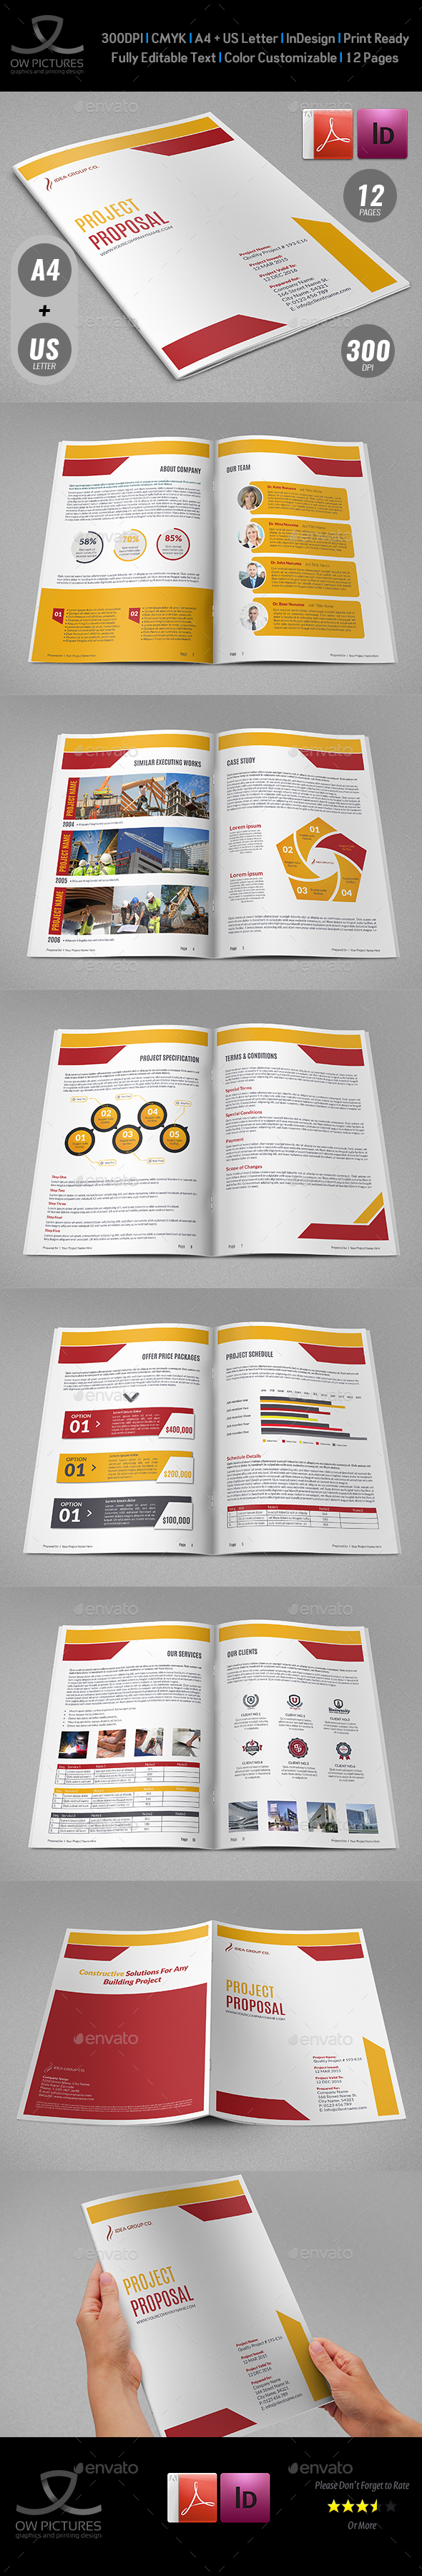 Construction Company Proposal Template Vol.4 - Proposals & Invoices Stationery